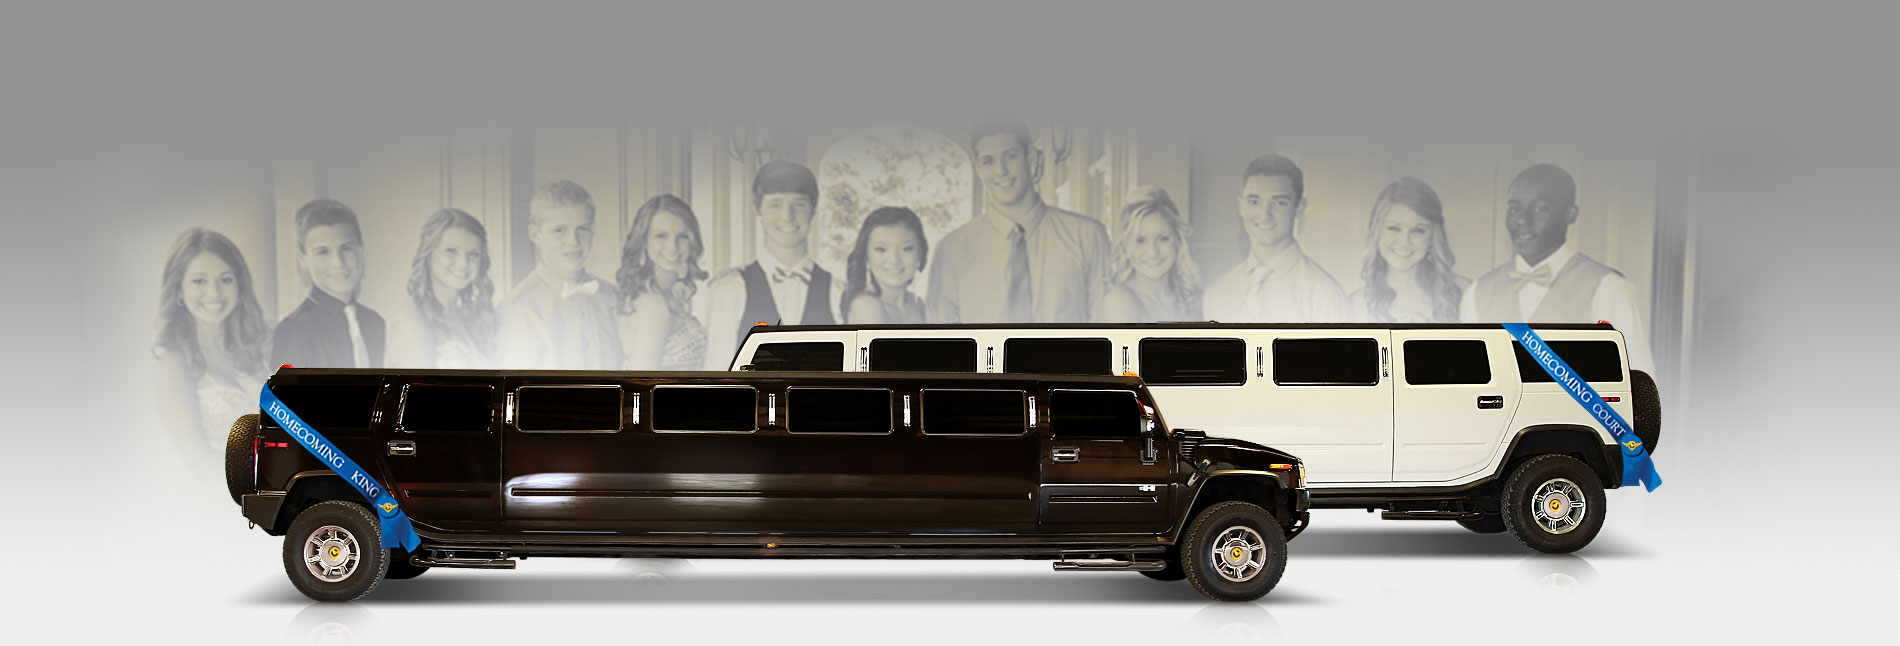 Homecoming Limo